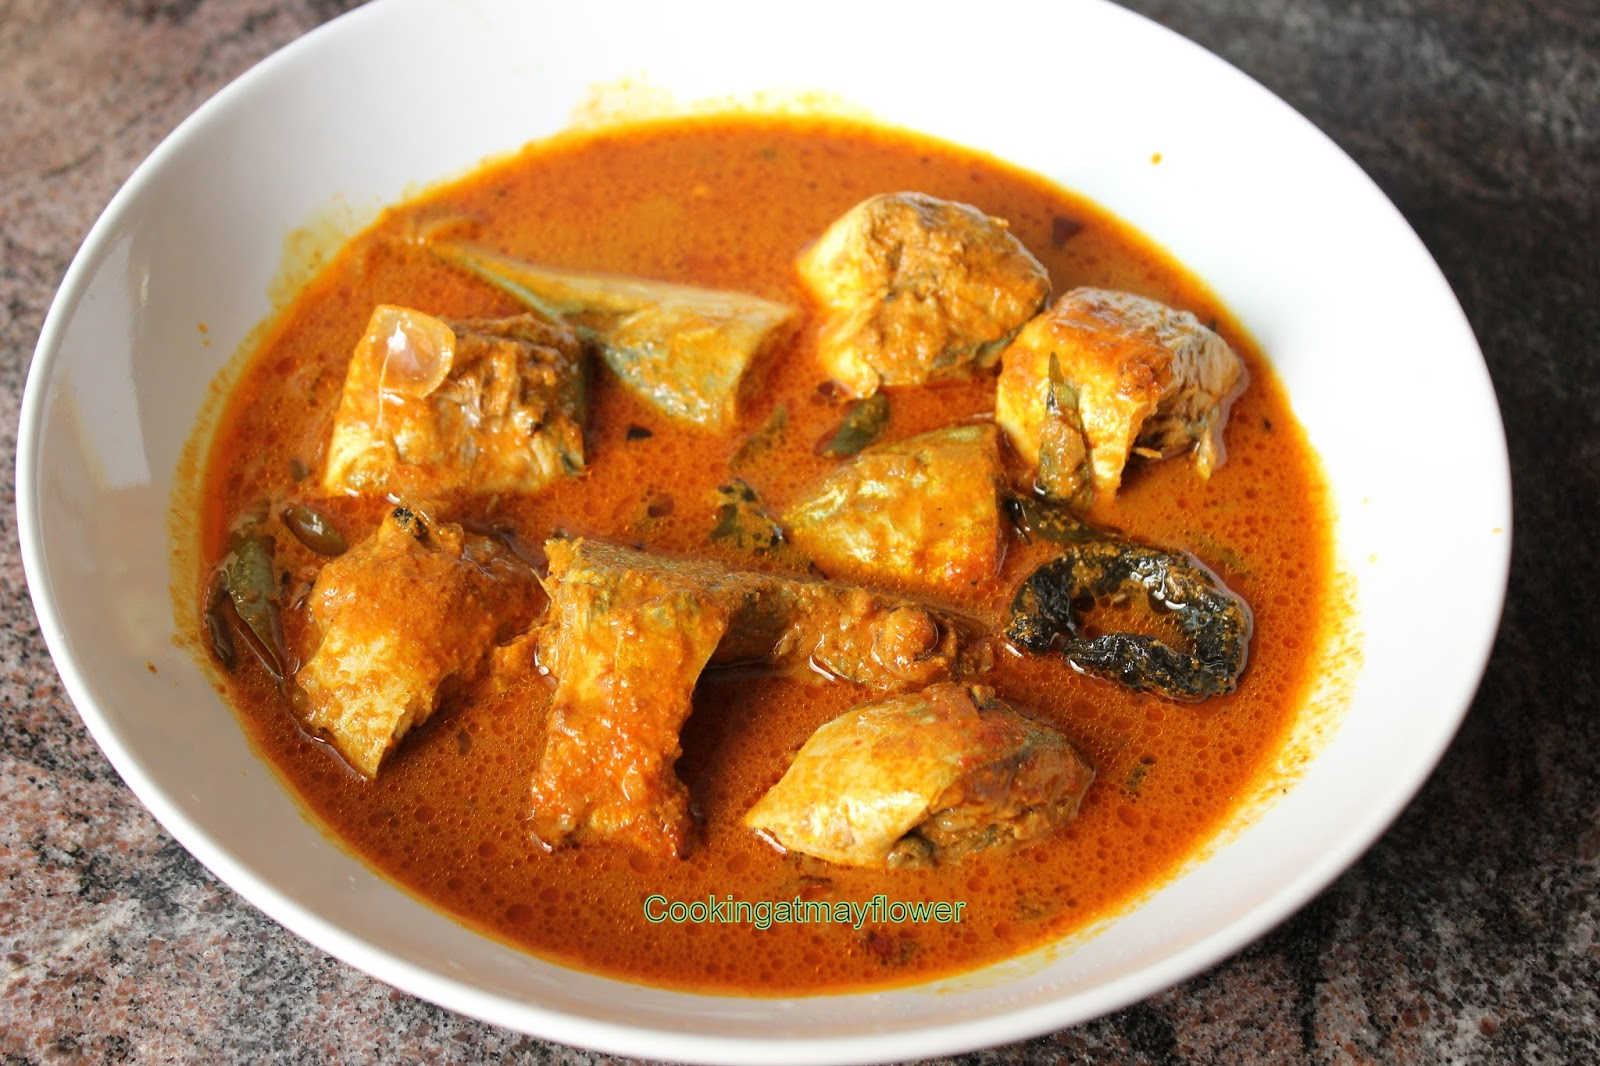 Cooking at Mayflower: Kerala Fish curry in coconut gravy ...